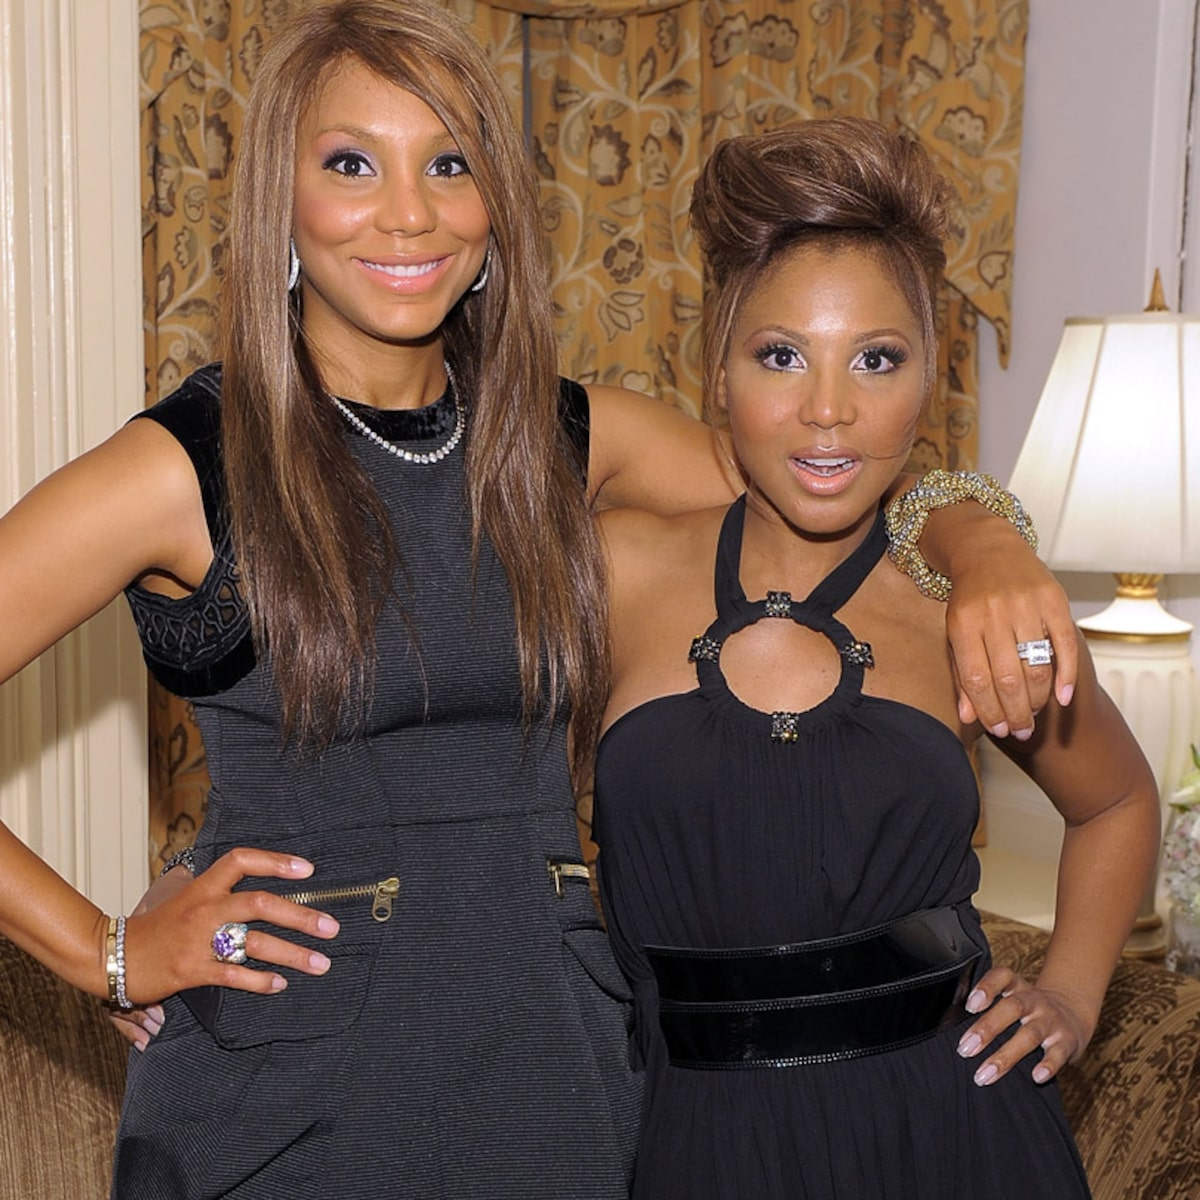 toni-braxton-wishes-a-happy-birthday-to-her-little-sister-tamar-braxton